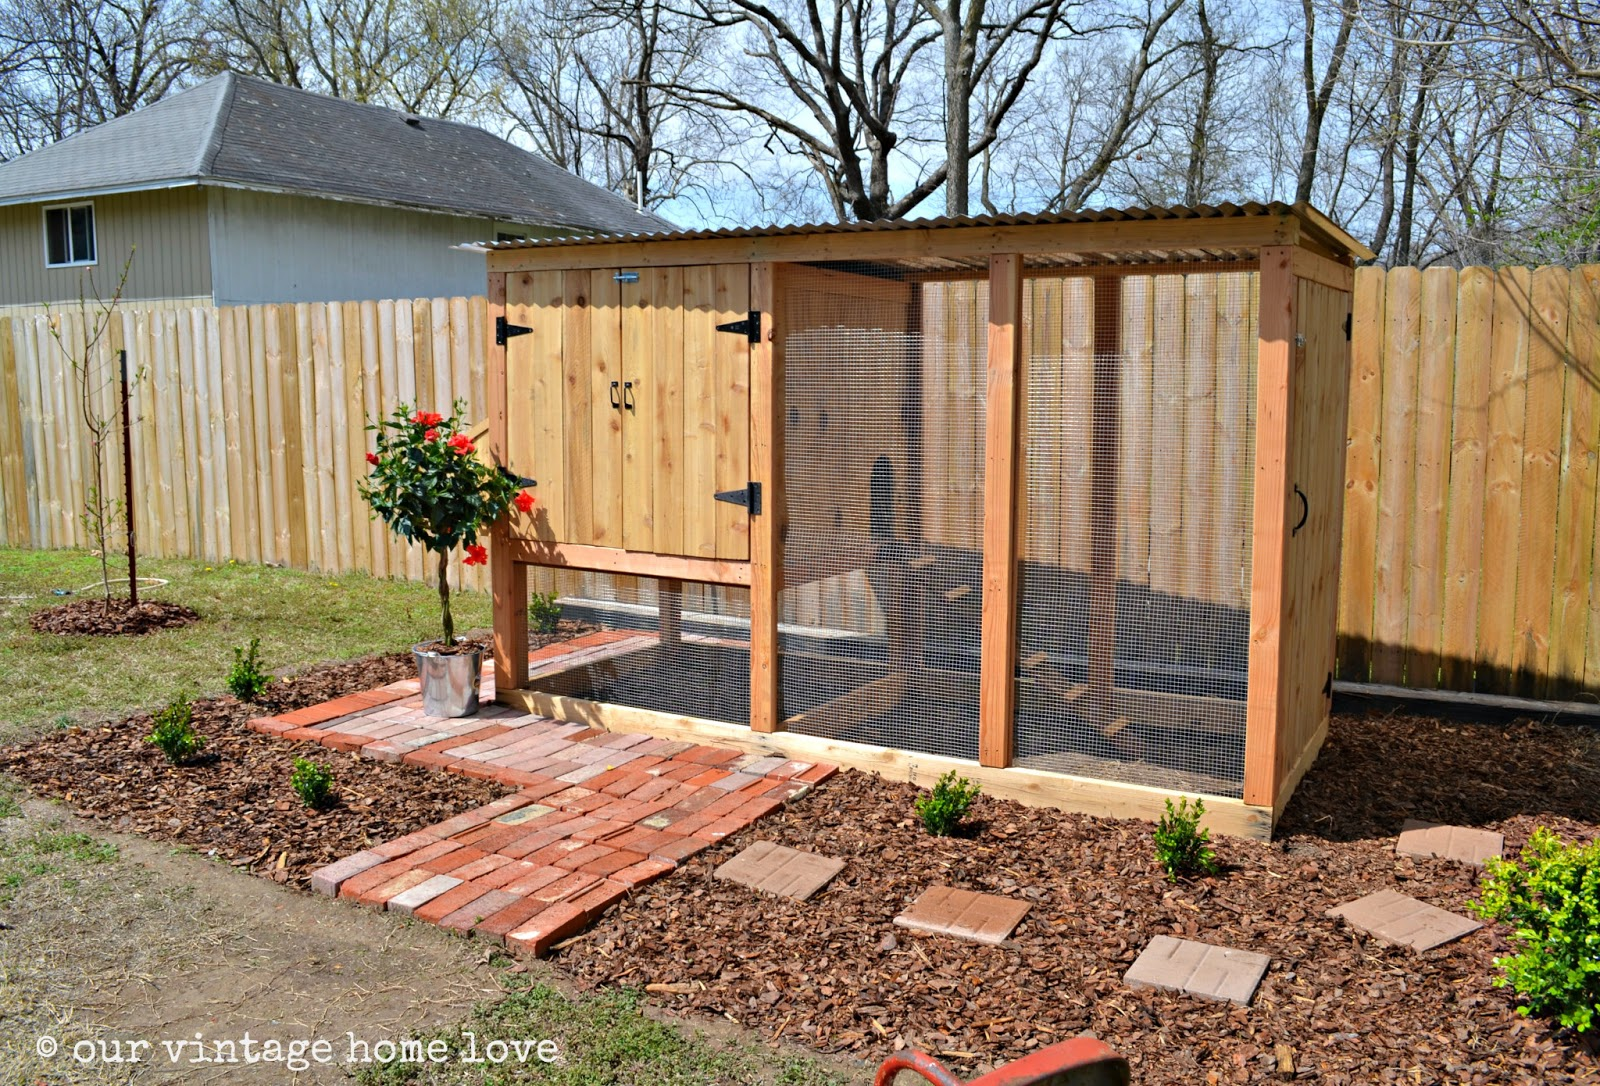 Building A Chicken Coop For Dummies Diy Chicken Coops Plans That Are Easy To Build Seek Diy